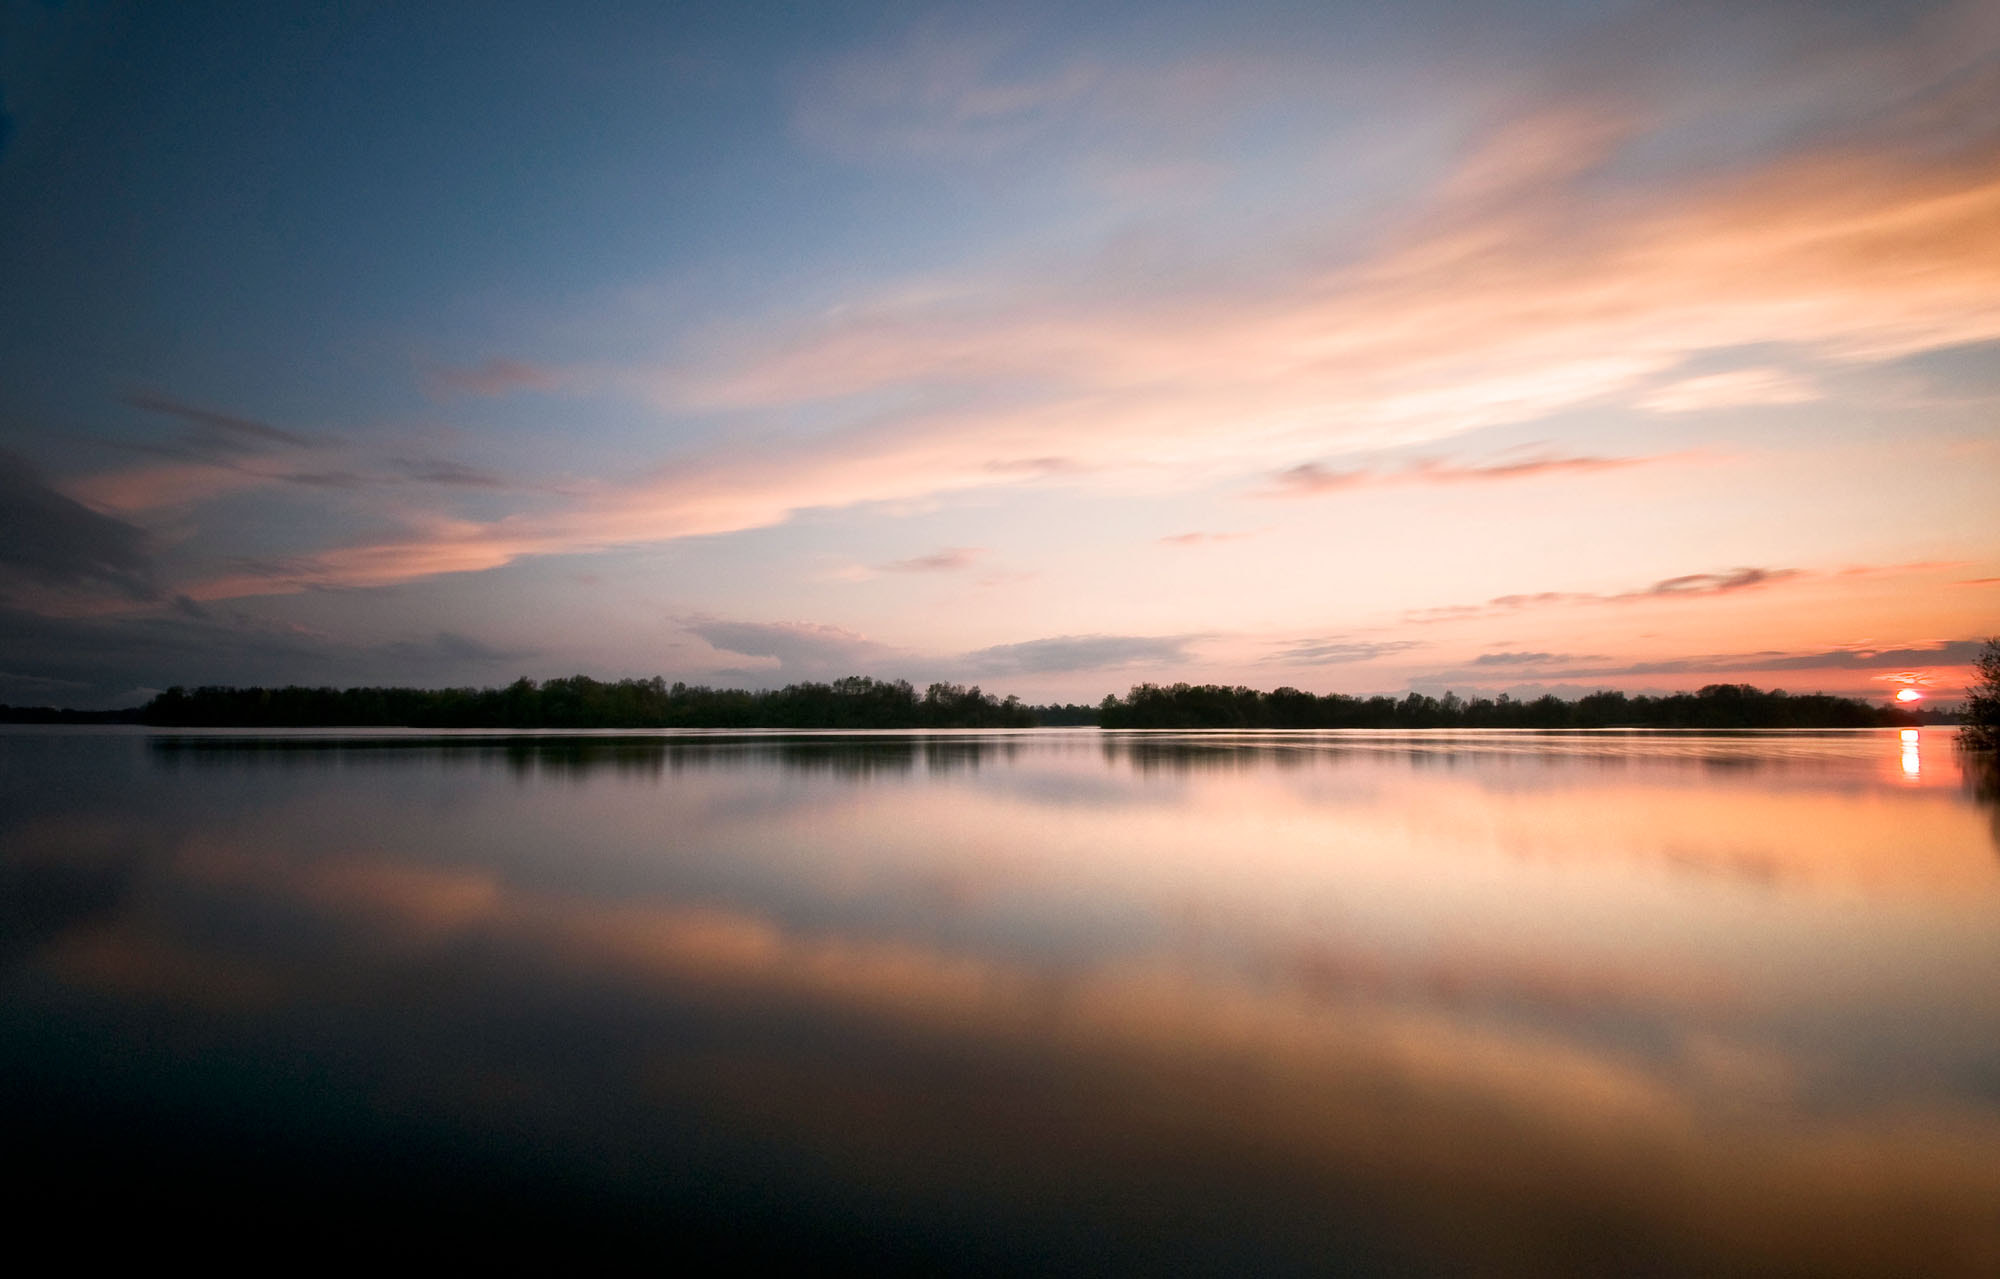 Photograph Just Reflections by Daniel Bosma on 500px